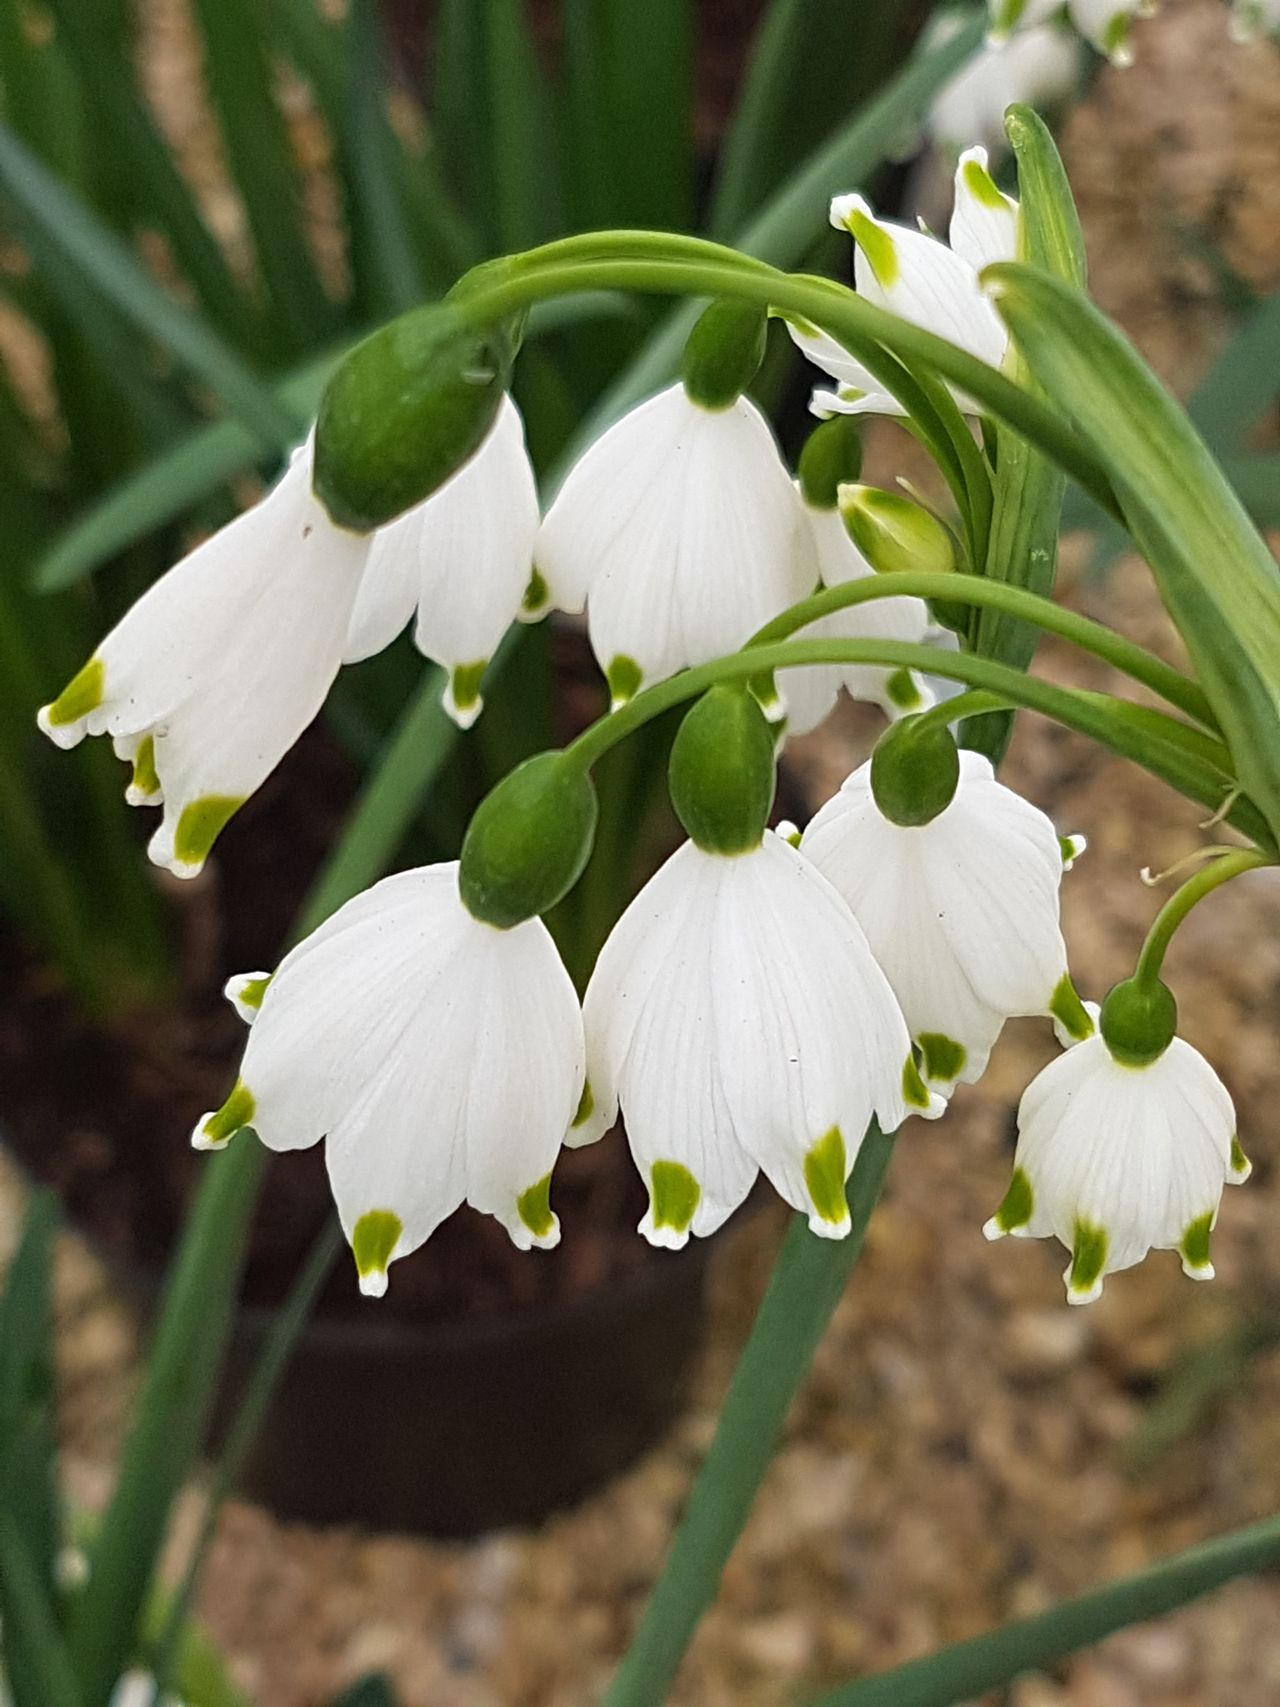 Leucojum Spring Snowflake Nature Beauty In Nature Flower Close-up Focus On Foreground White Color Freshness Plant Fragility Green Color Flower Head Springtime No People Outdoors Day Growth Simple Quiet Love Beauty In Nature Plant Freshness Noedit Nofilter Purist No Edit No Filter